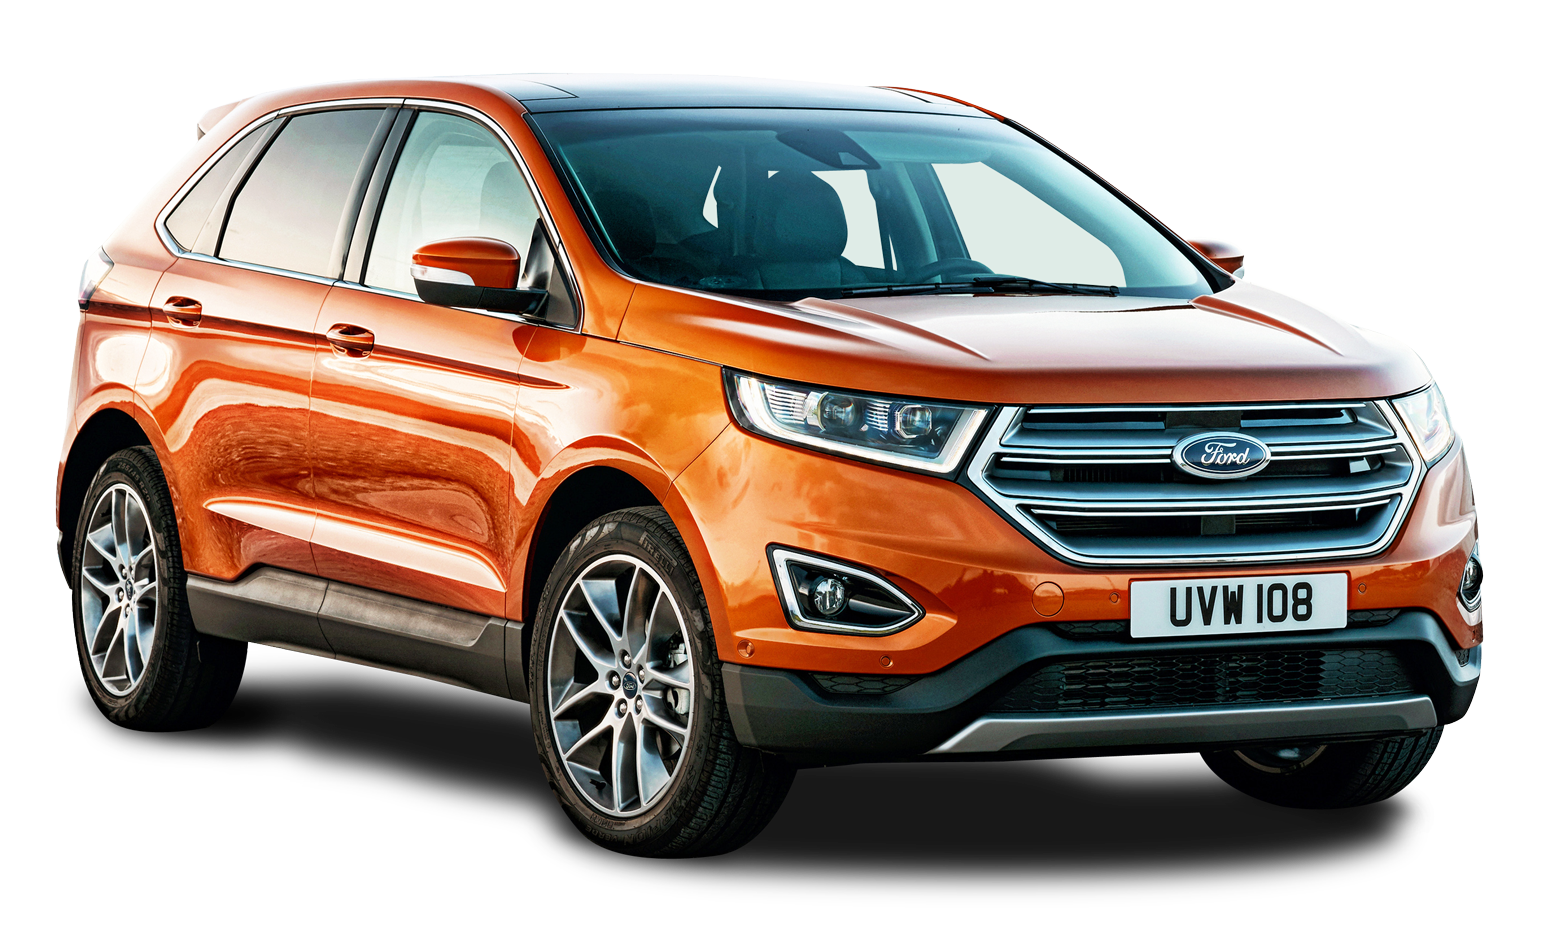 Orange car clipart clip art free stock Ford Edge Orange Car PNG Image - PurePNG | Free transparent CC0 PNG ... clip art free stock